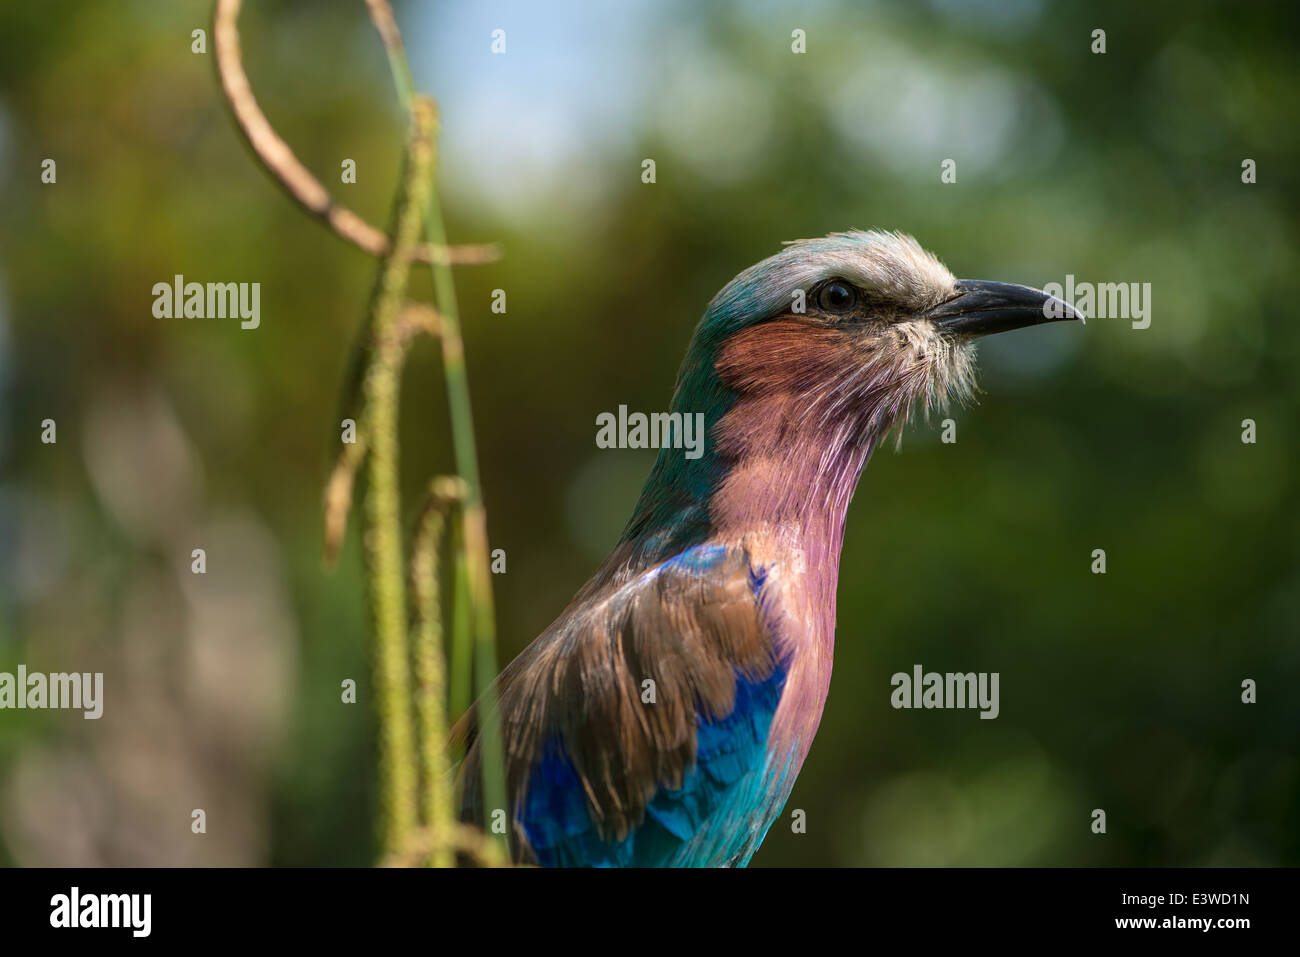 Intrigued lilac-breasted roller perched on a branch amongst the foliage on a sunny day - Stock Image